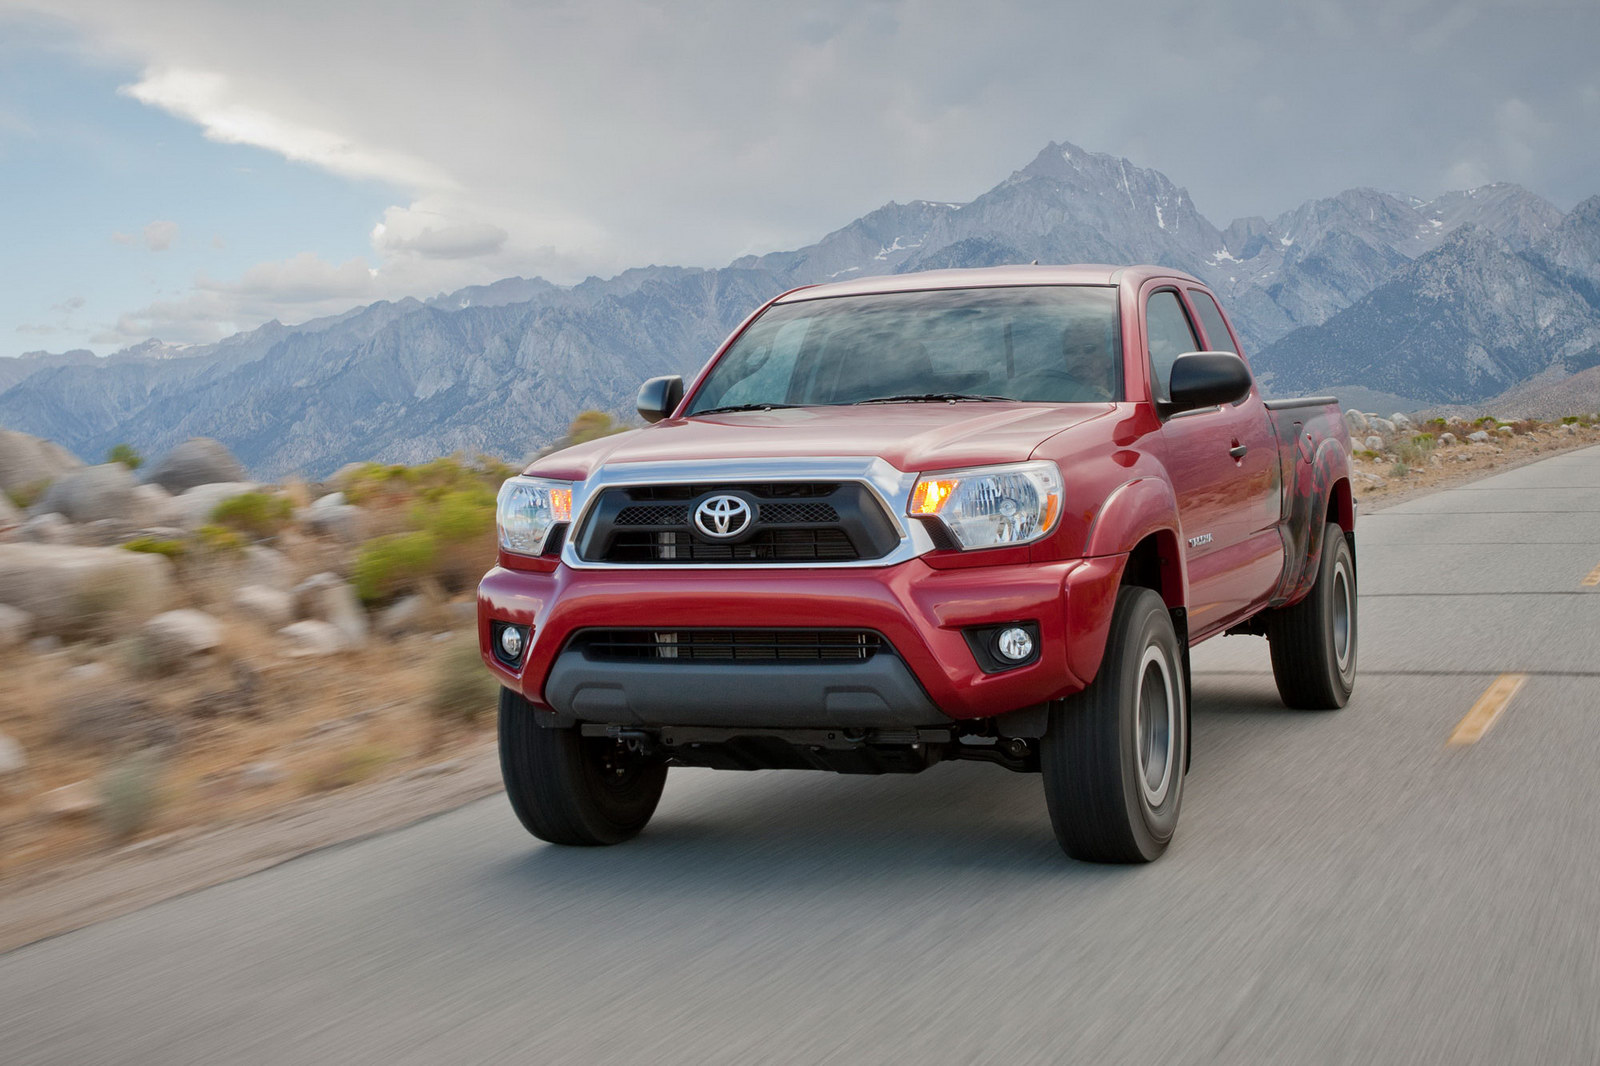 grill cover winter and screen image front products runner bug grille tacoma behind the pre pickup toyota